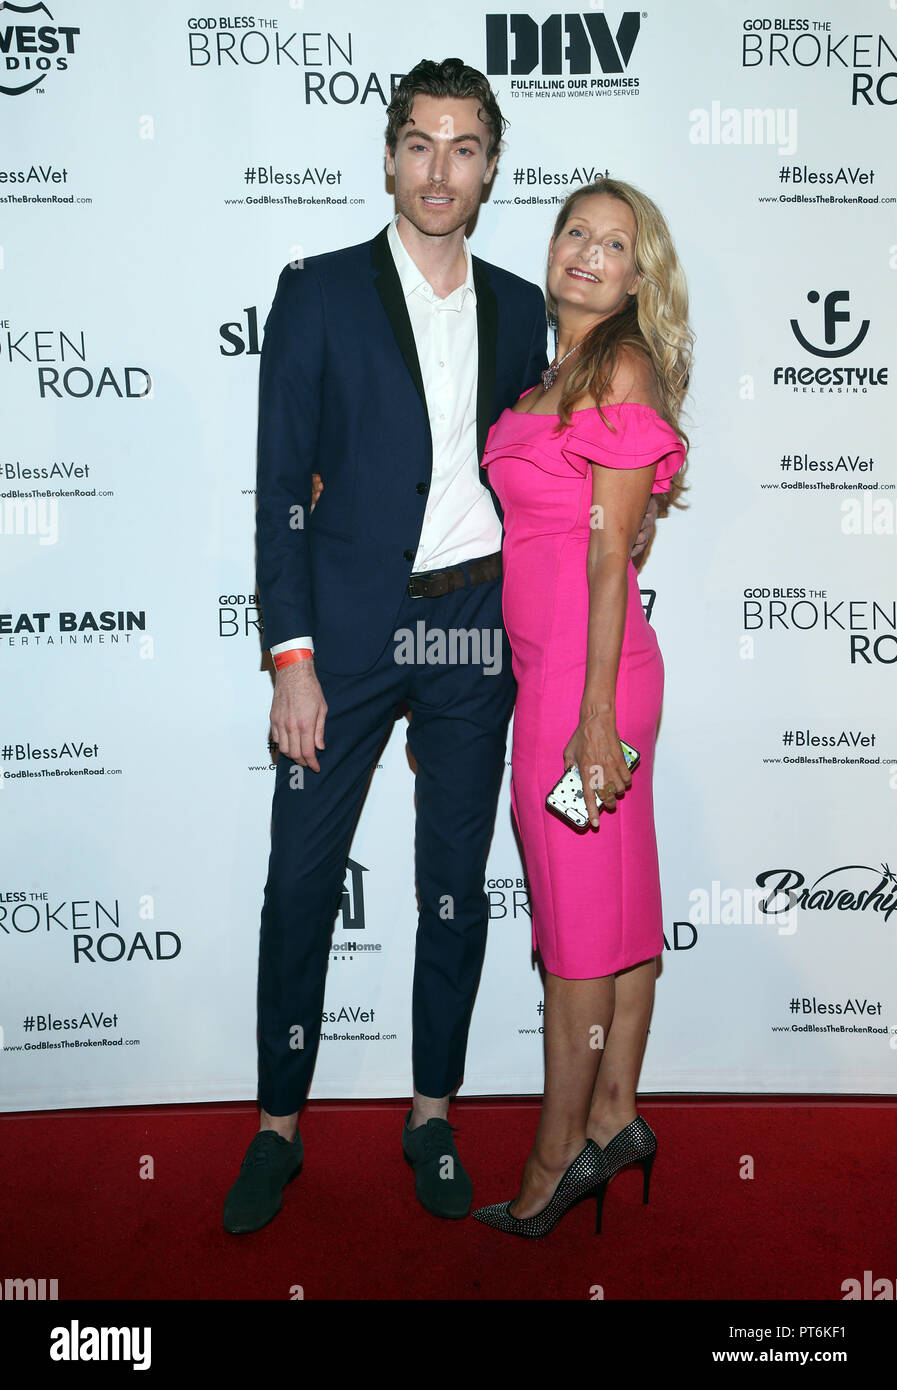 'God Bless The Broken Road' Premiere  Featuring: Guests Where: West Hollywood, California, United States When: 05 Sep 2018 Credit: FayesVision/WENN.com - Stock Image